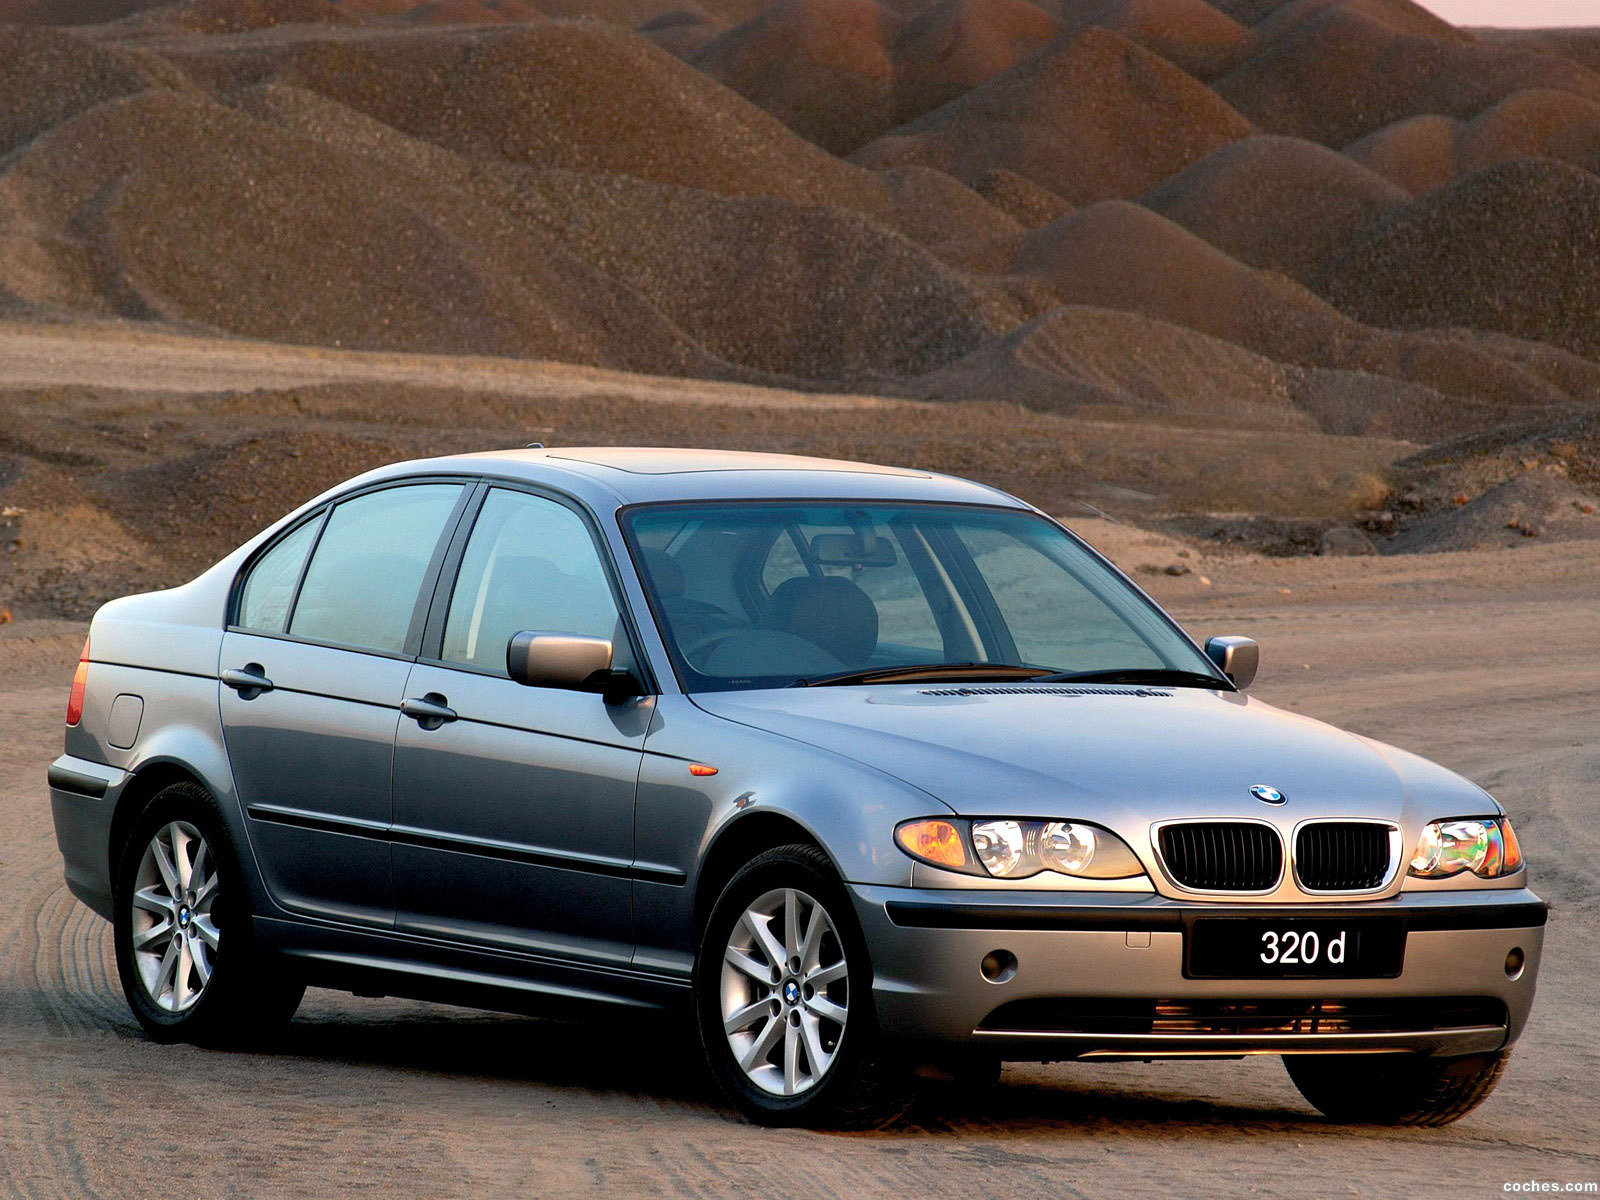 fotos de bmw serie 3 e46 320d sedan e46 2001 foto 1. Black Bedroom Furniture Sets. Home Design Ideas